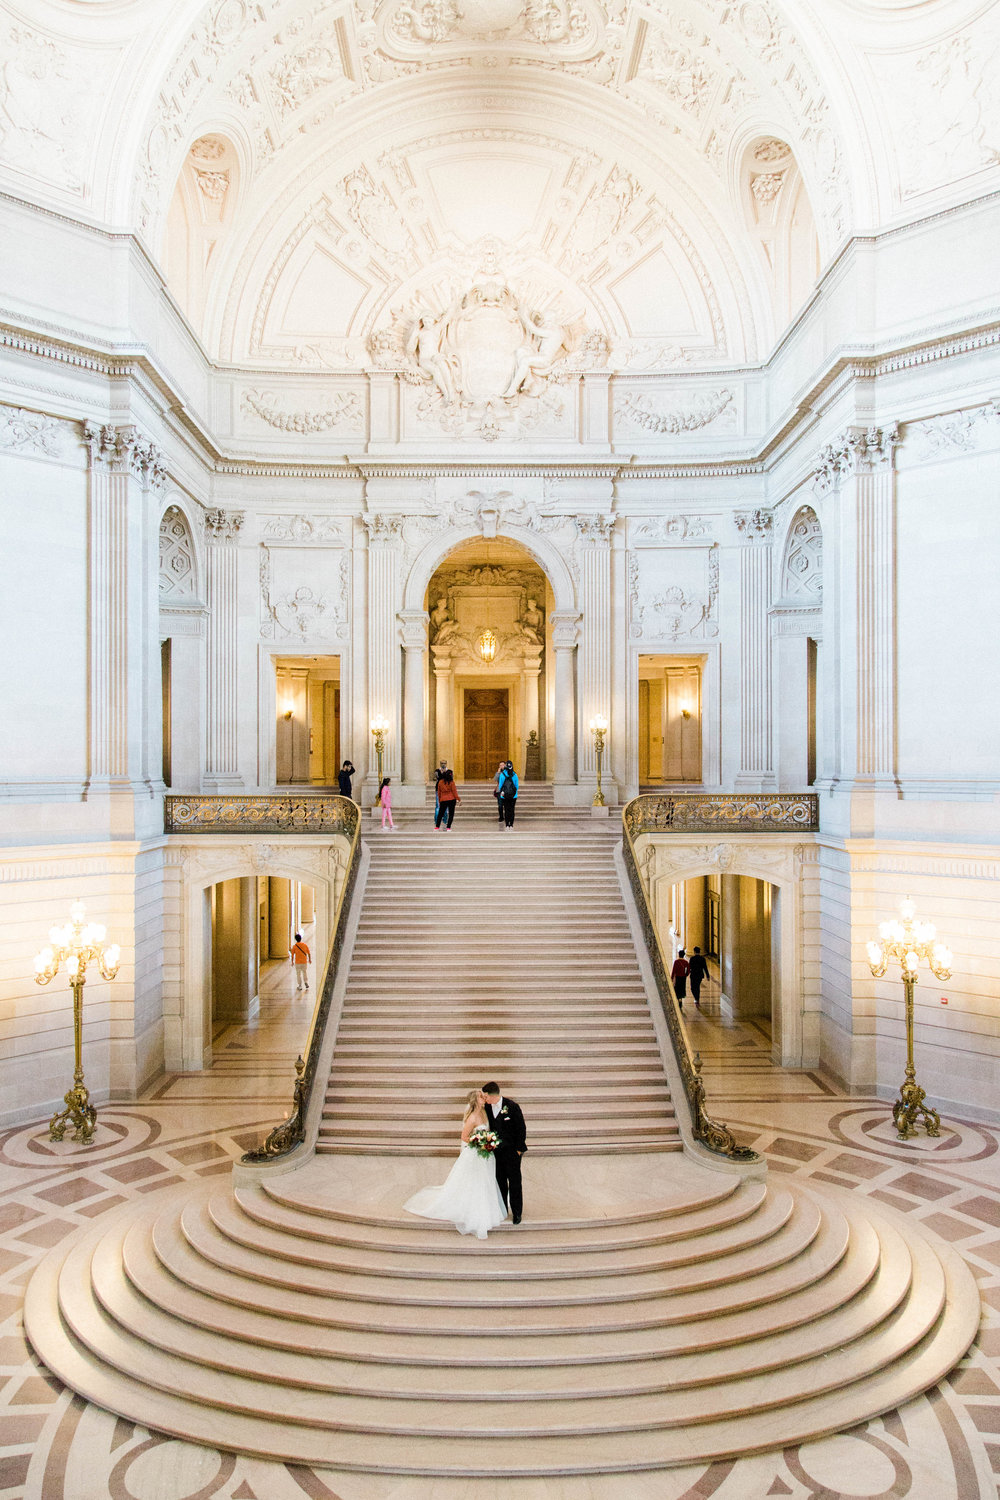 DennisRoyCoronel_Photography_SanFranciscoCityHall_Wedding-100.jpg